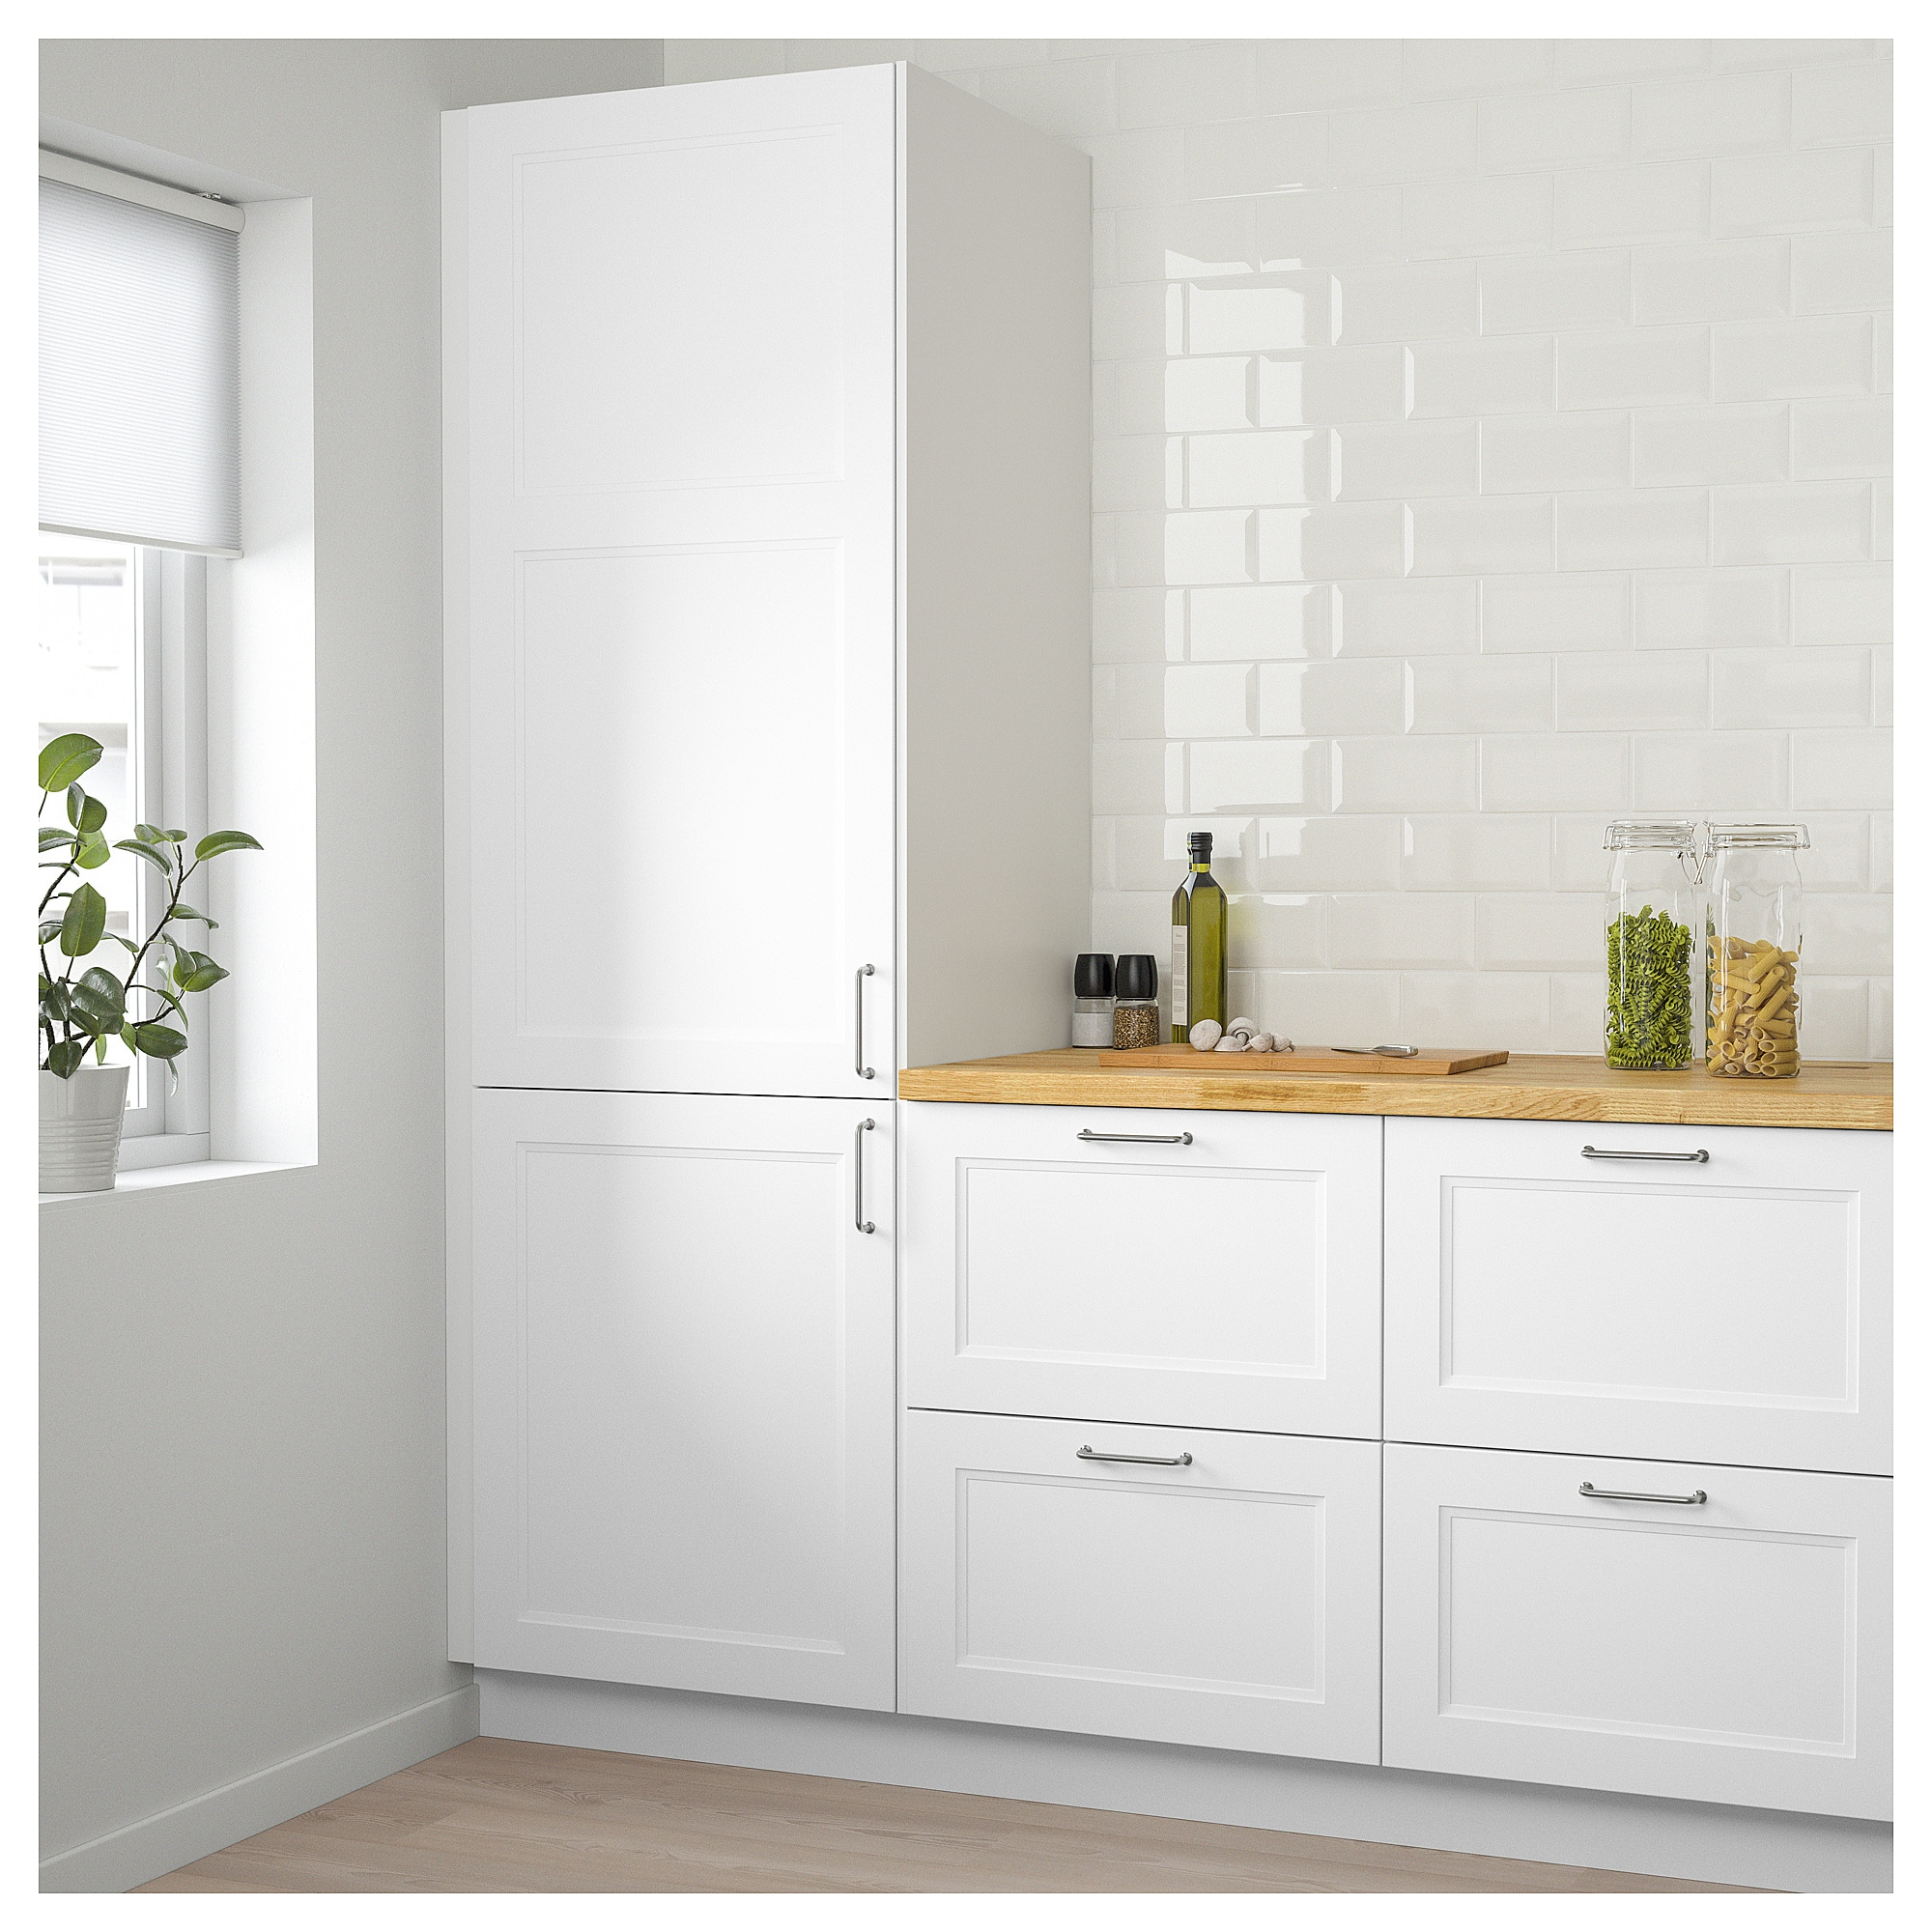 Best Ikea Axstad Door Matt White Kitchen Design Ikea 400 x 300